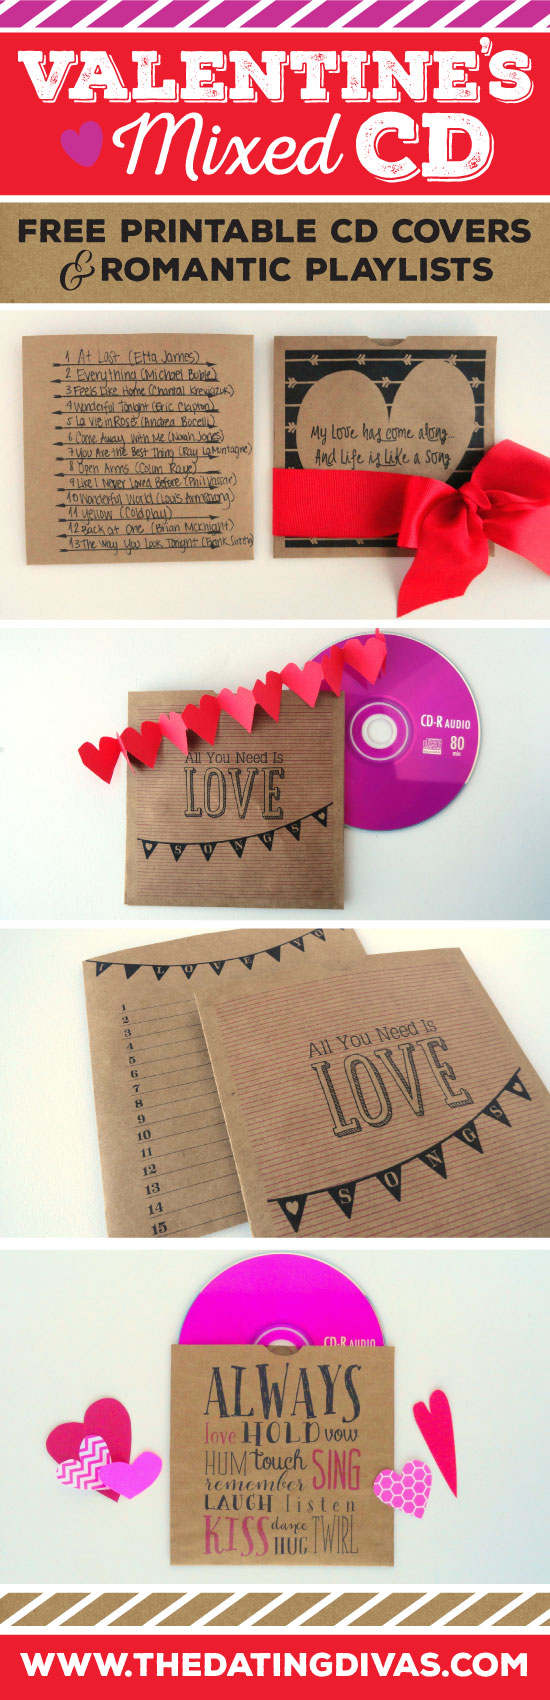 Valentines Day Mixed CD Printable Covers and Romantic Playlist www.TheDatingDivas.com